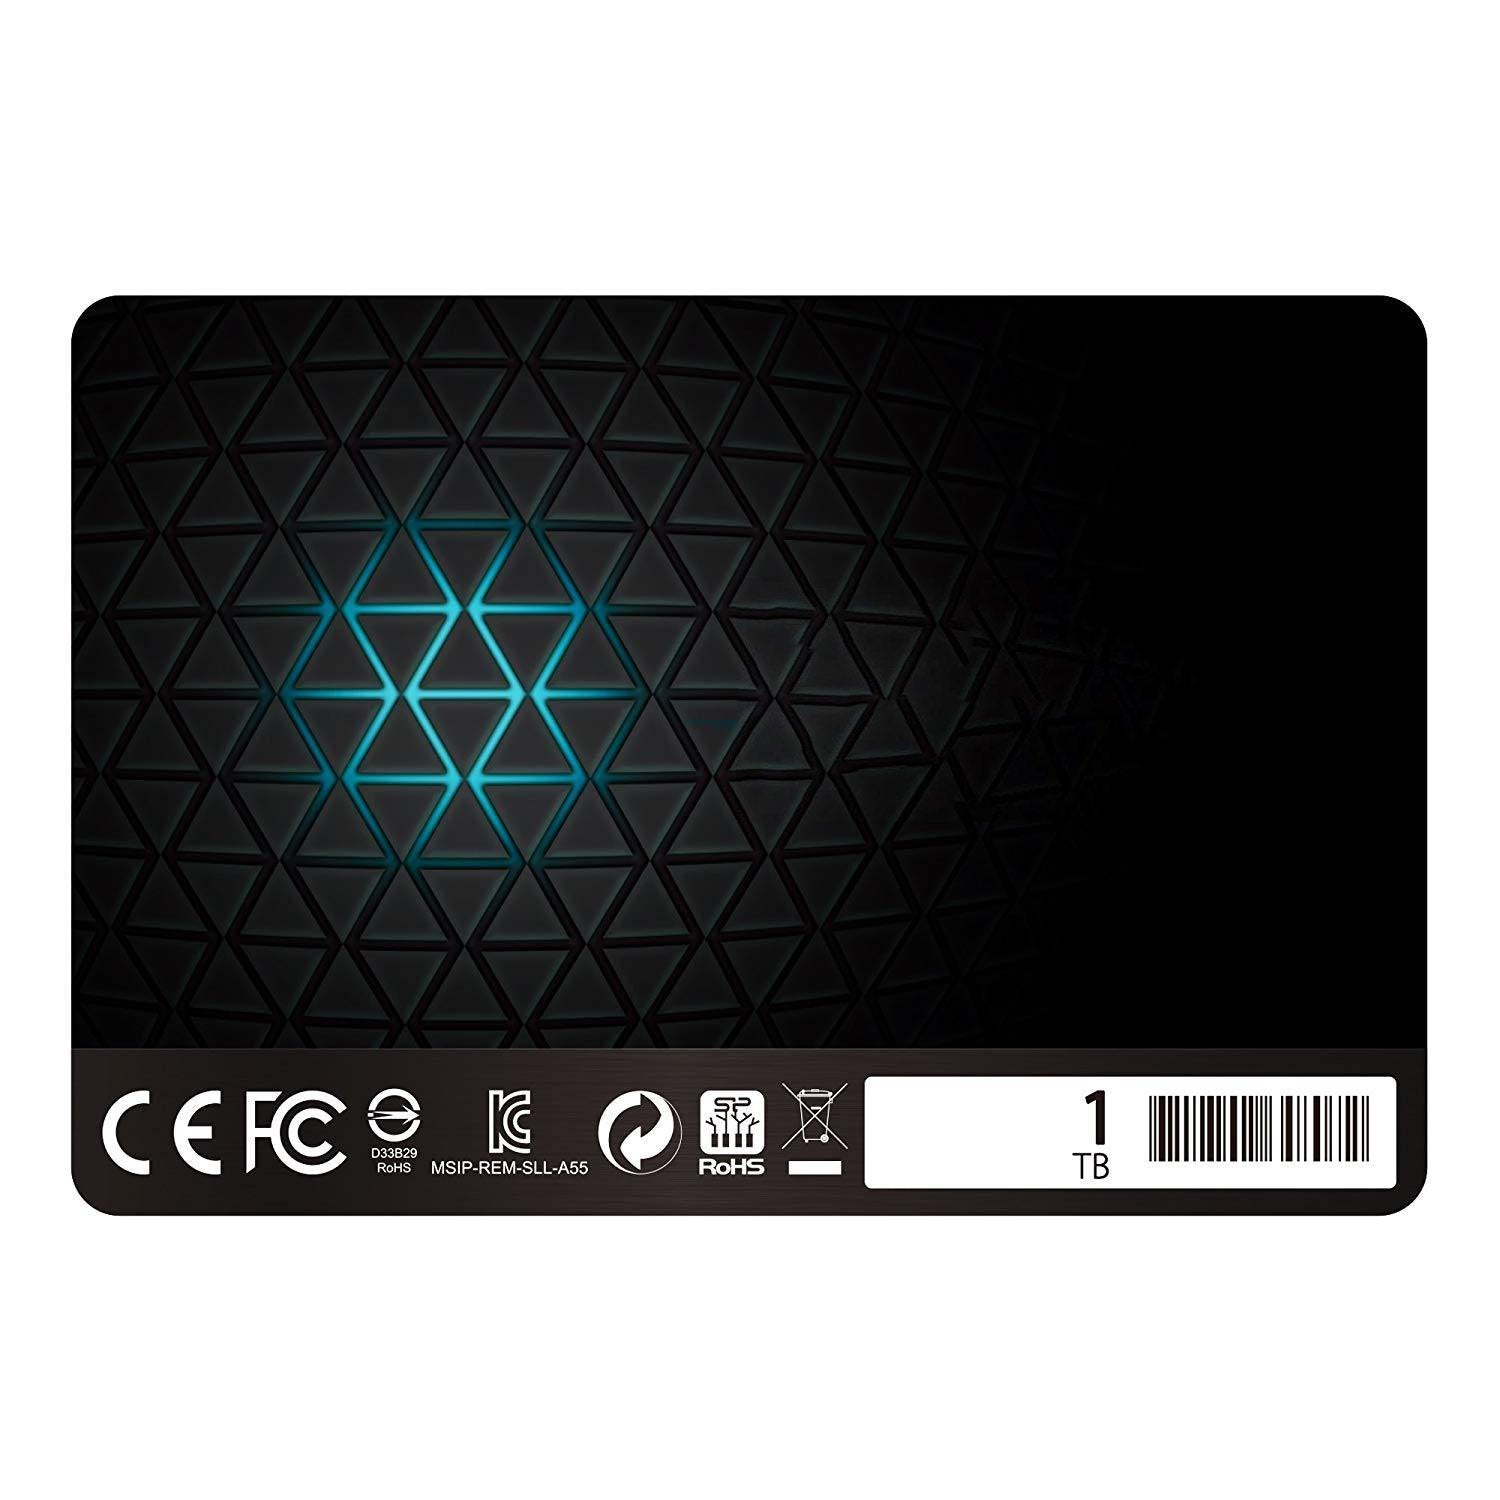 1TB Internal Solid State Drive